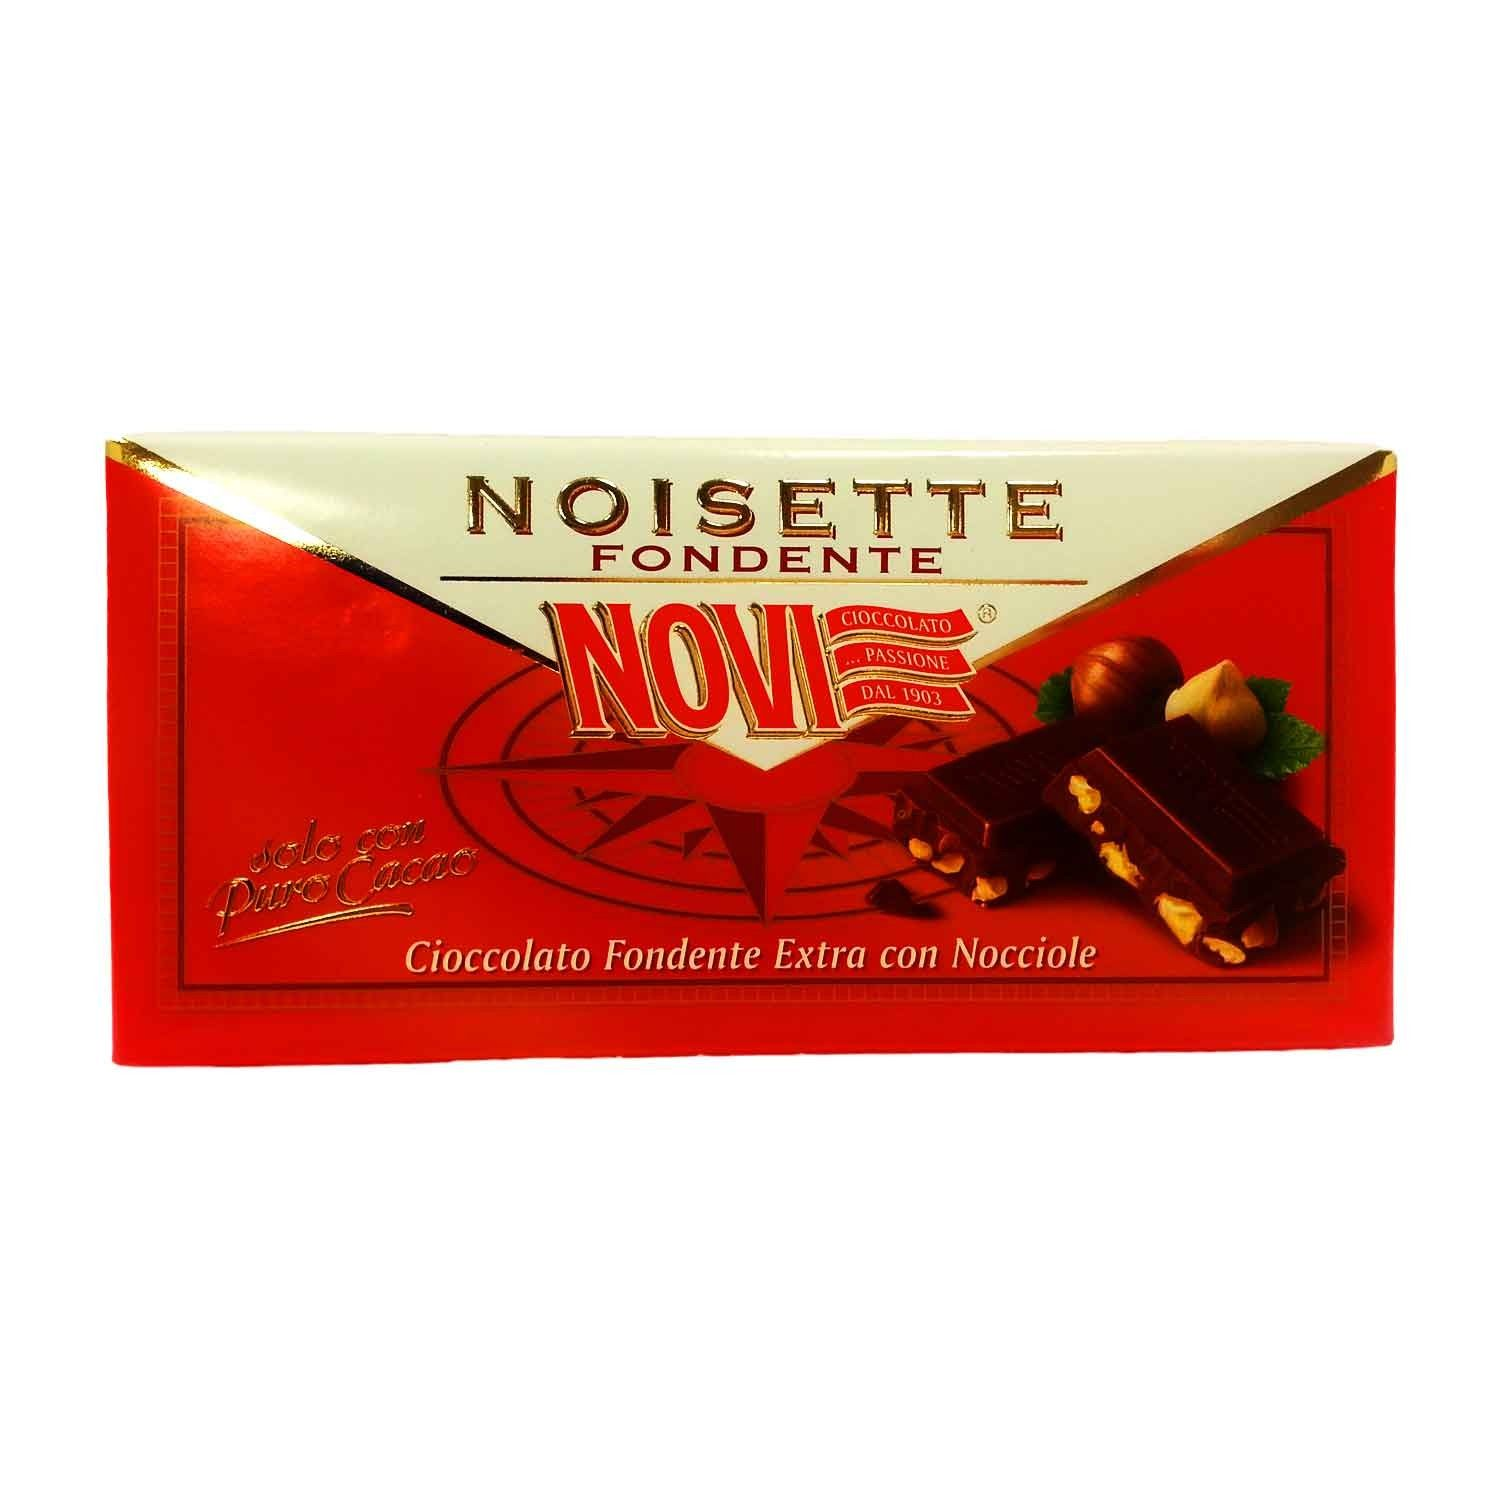 Image Result For Italian Chocolate Bars Italian Chocolate Chocolate Packaging Design